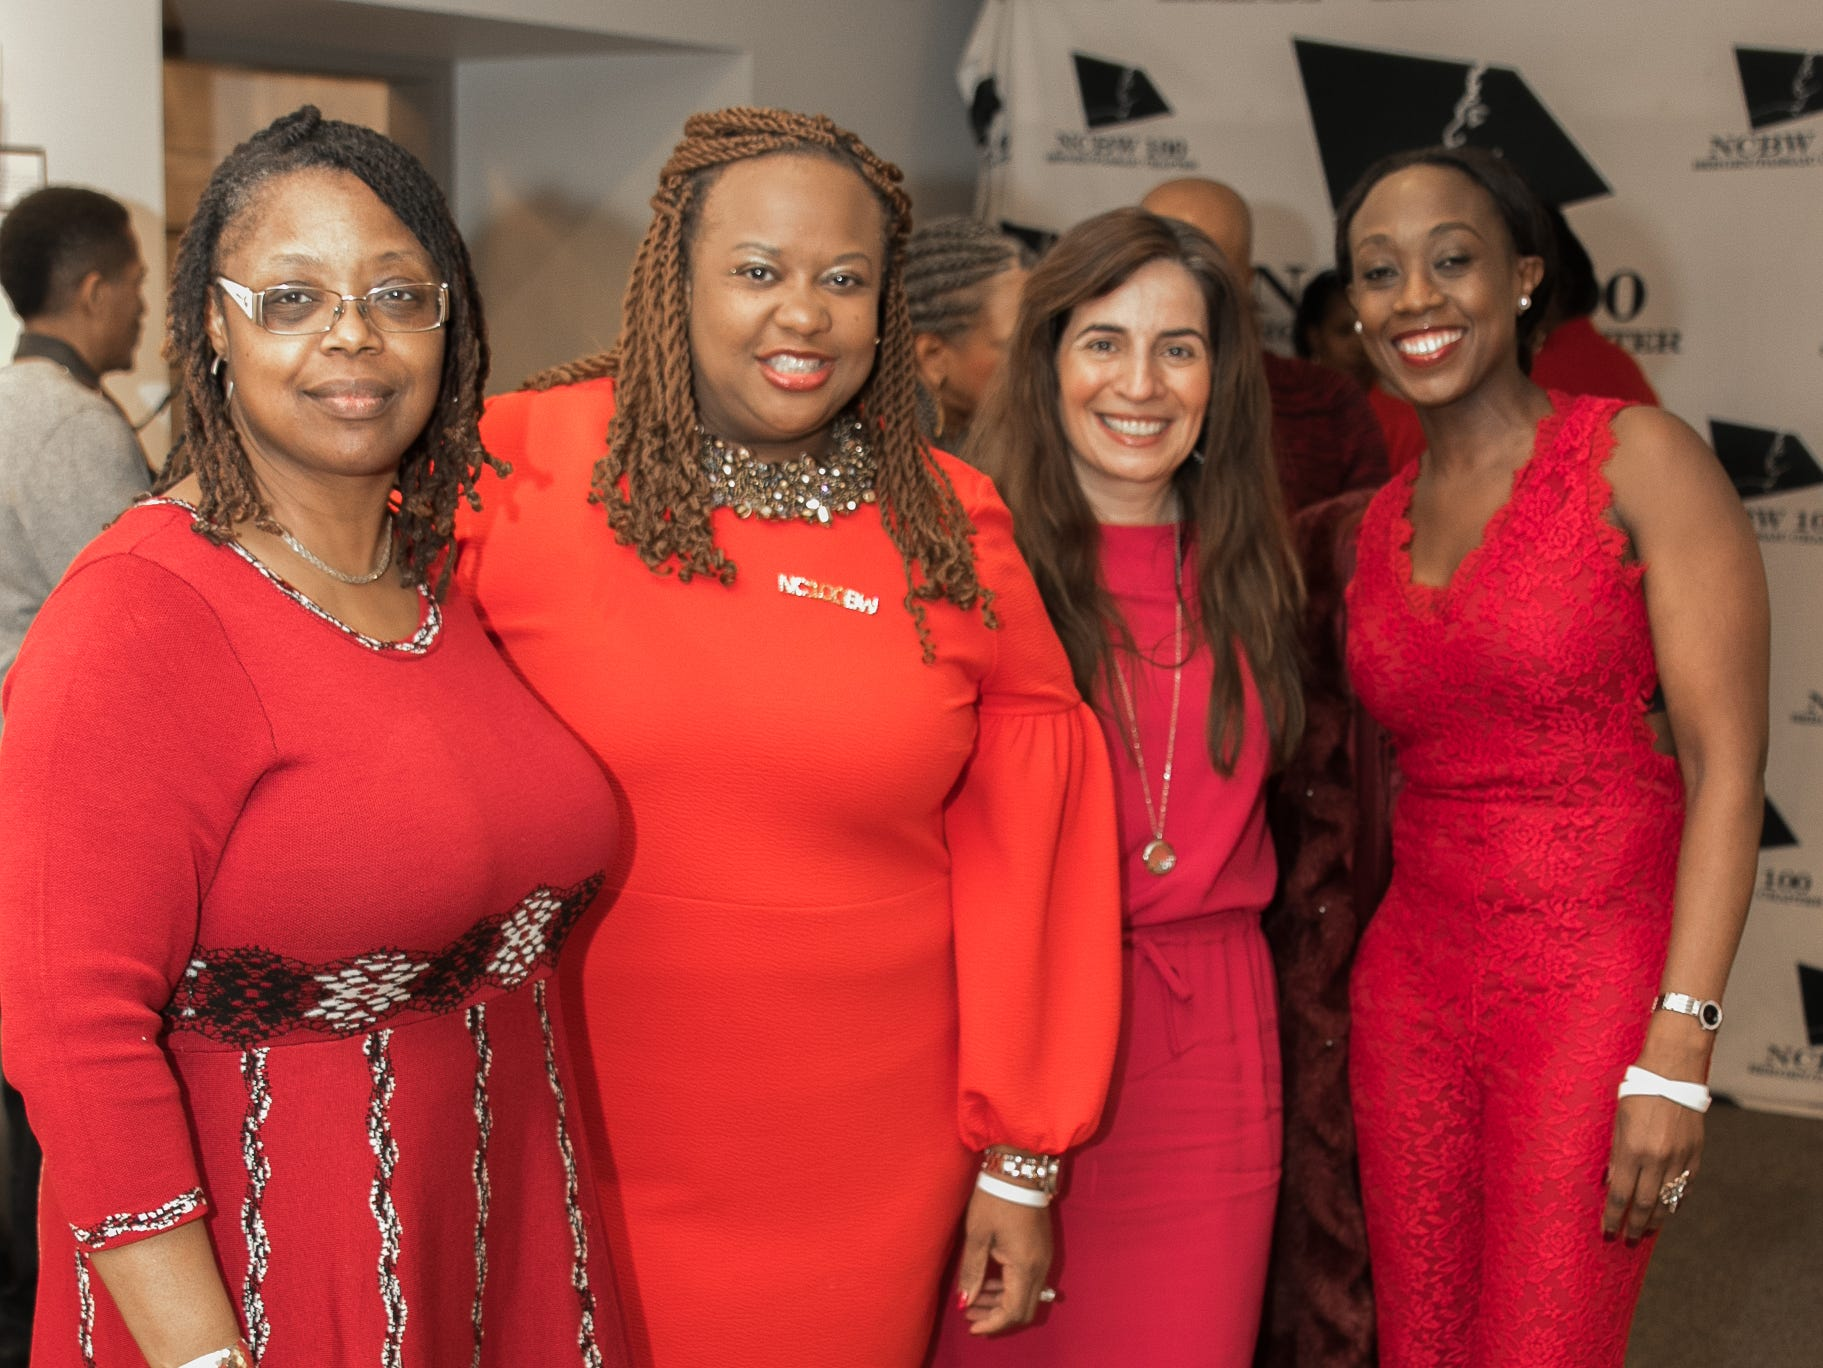 Ronzetta Robinson, NCBW President Paula Madison-Ryner, Helen Archontou, Chamaine Bigby. The National Coalition of Black Women of Bergen and Passaic Counties held its annual Heart Healthy Go Red Event at The Hackensack Performing Arts Theater. 02/01/2019